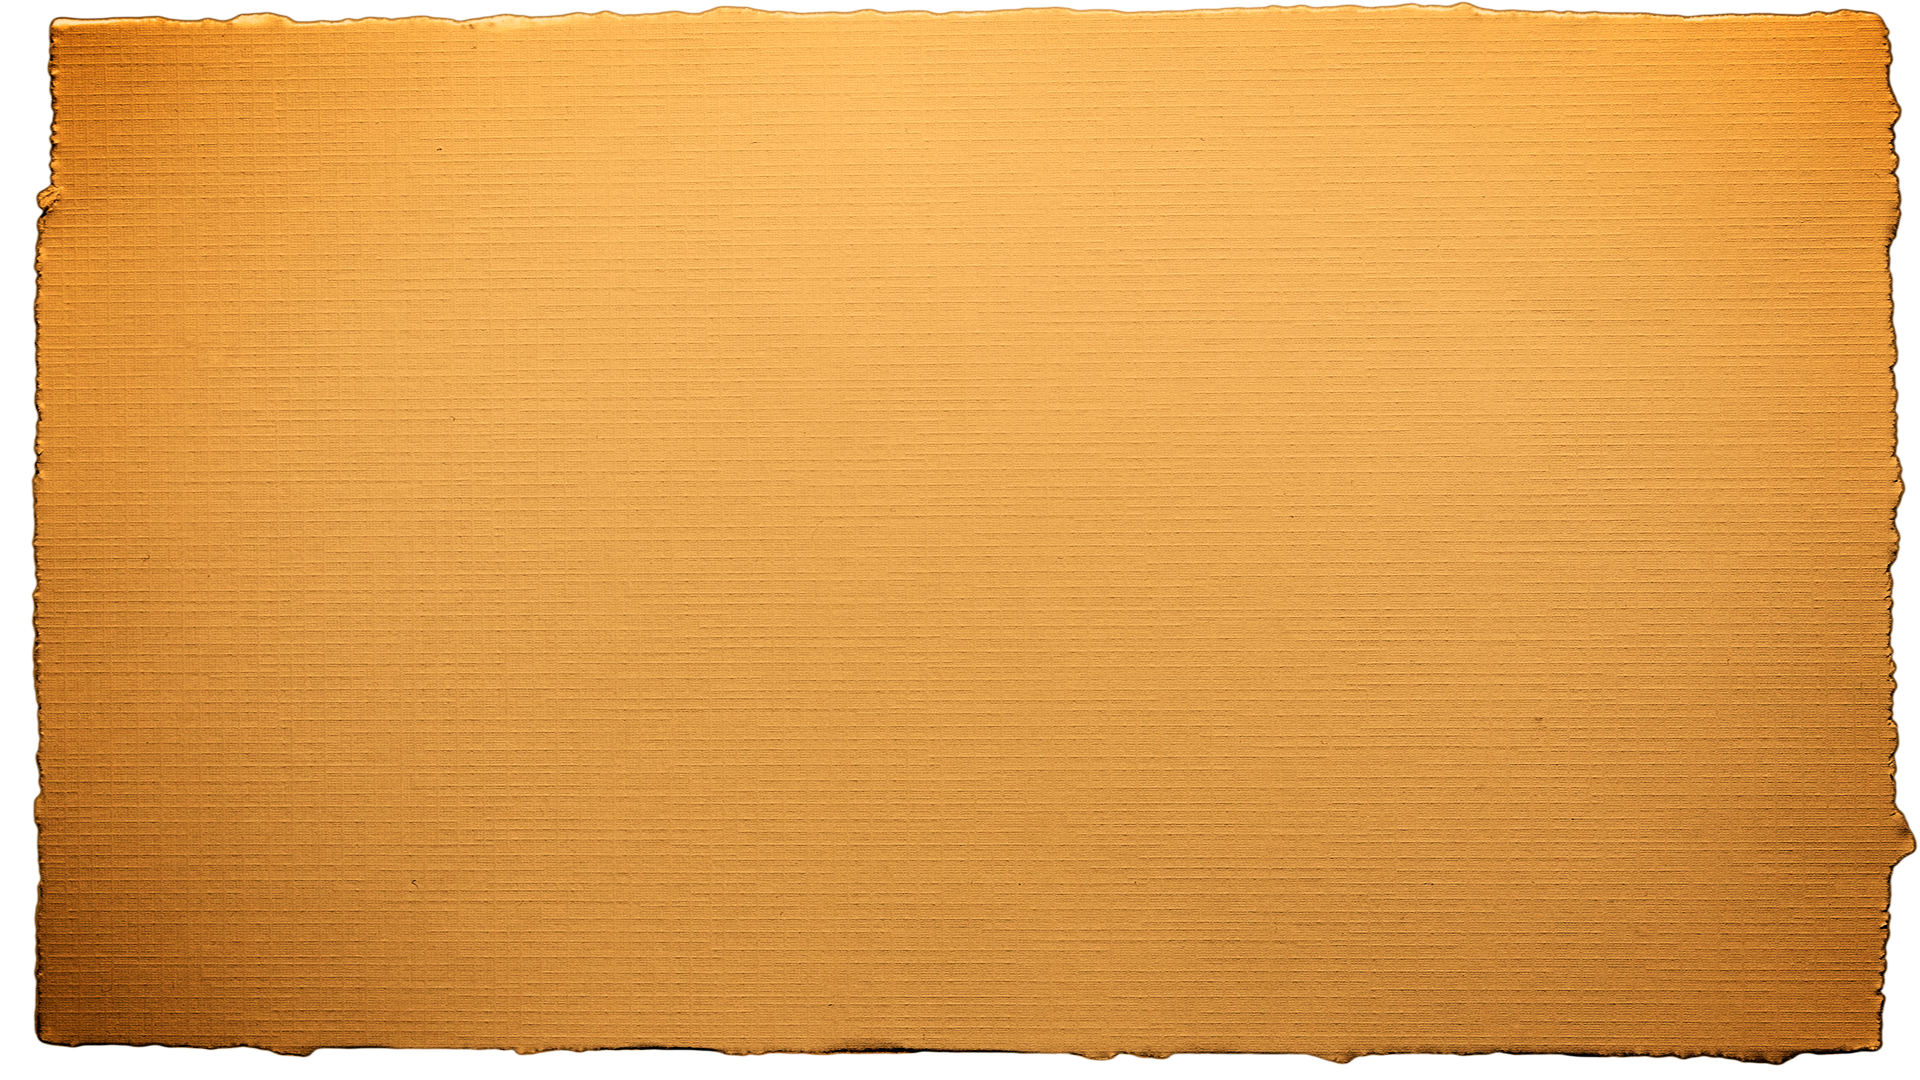 yellow orange torn paper background hd Paper Backgrounds 1920x1080